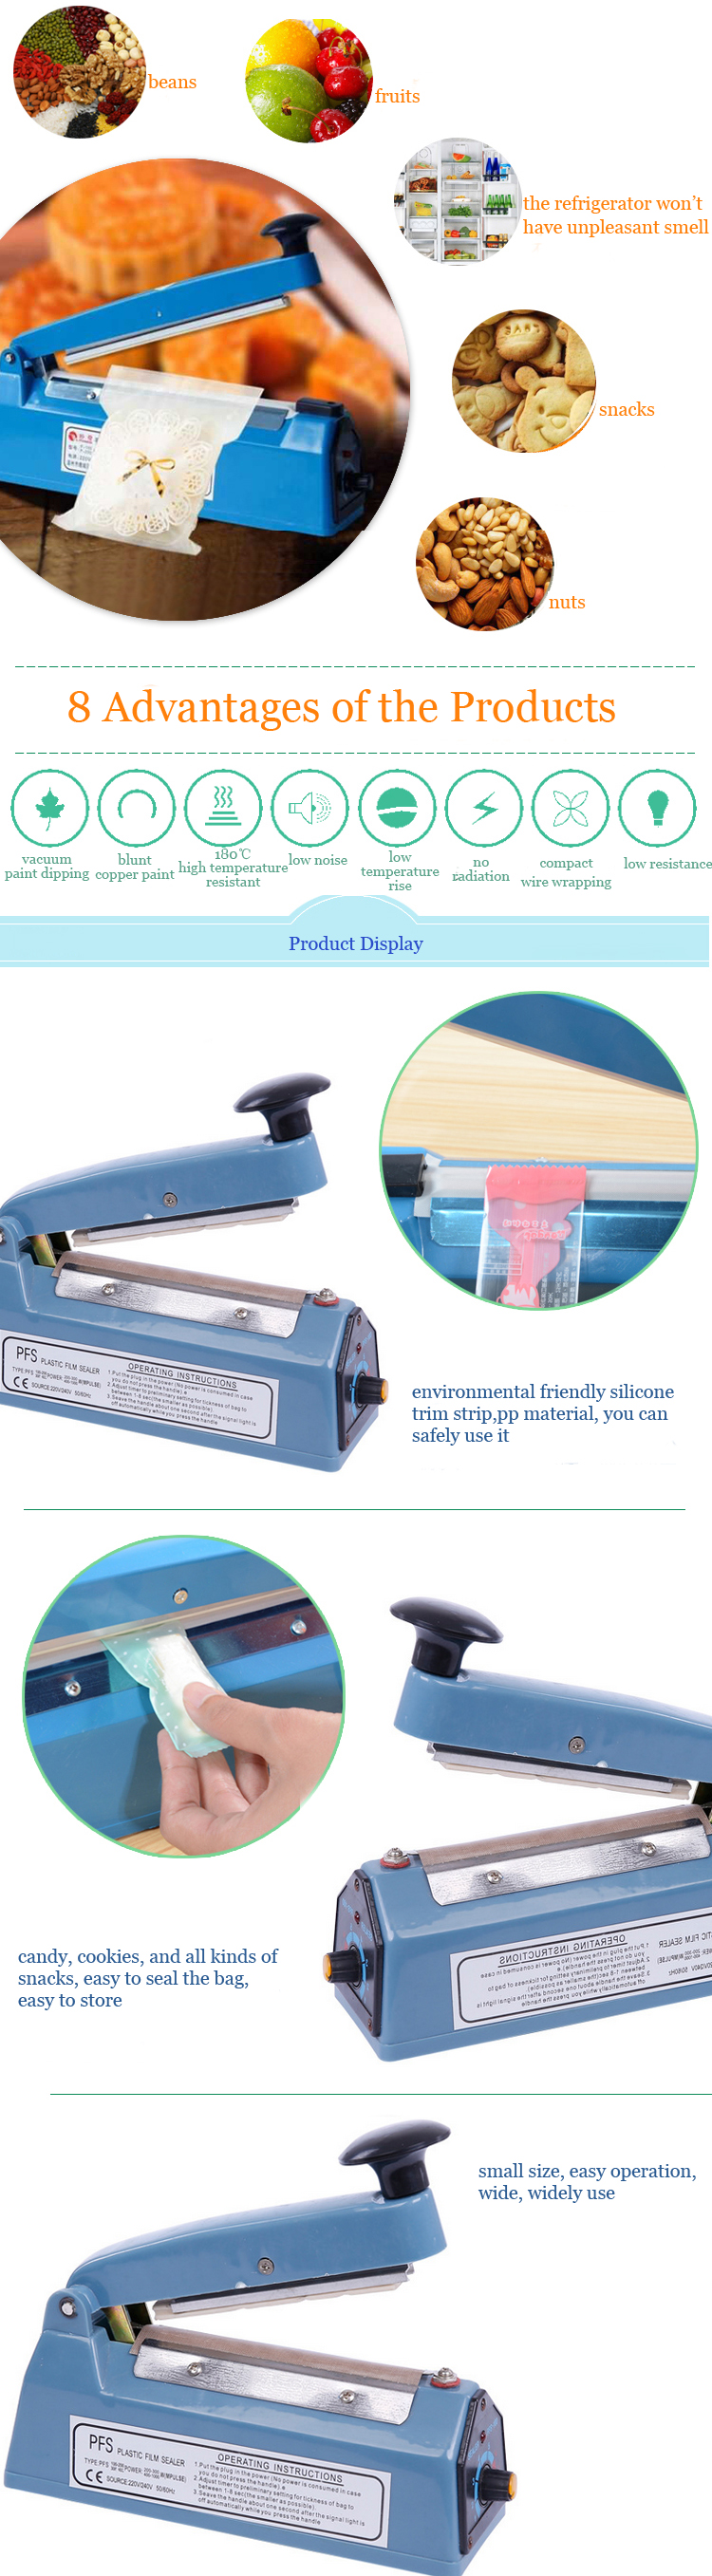 220V Electric Manual Bag Sealer Sealing Machine Food Tea Plastic Bag Heating Sealing Machine